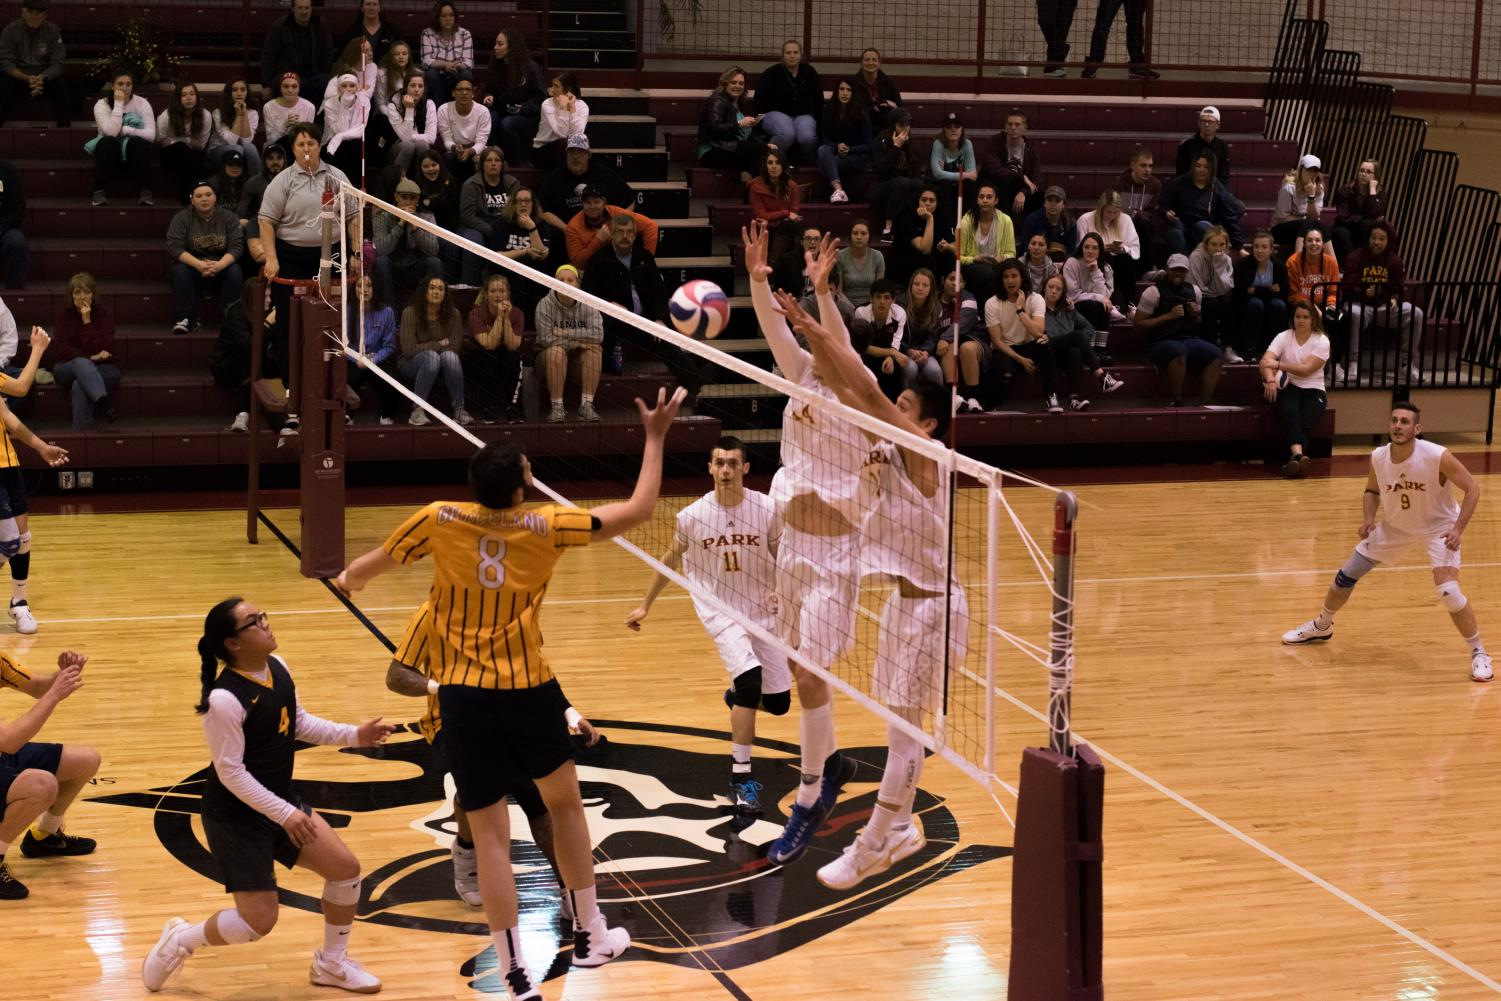 Park Pirates men's volleyball playing the Graceland University Yellow Jackets